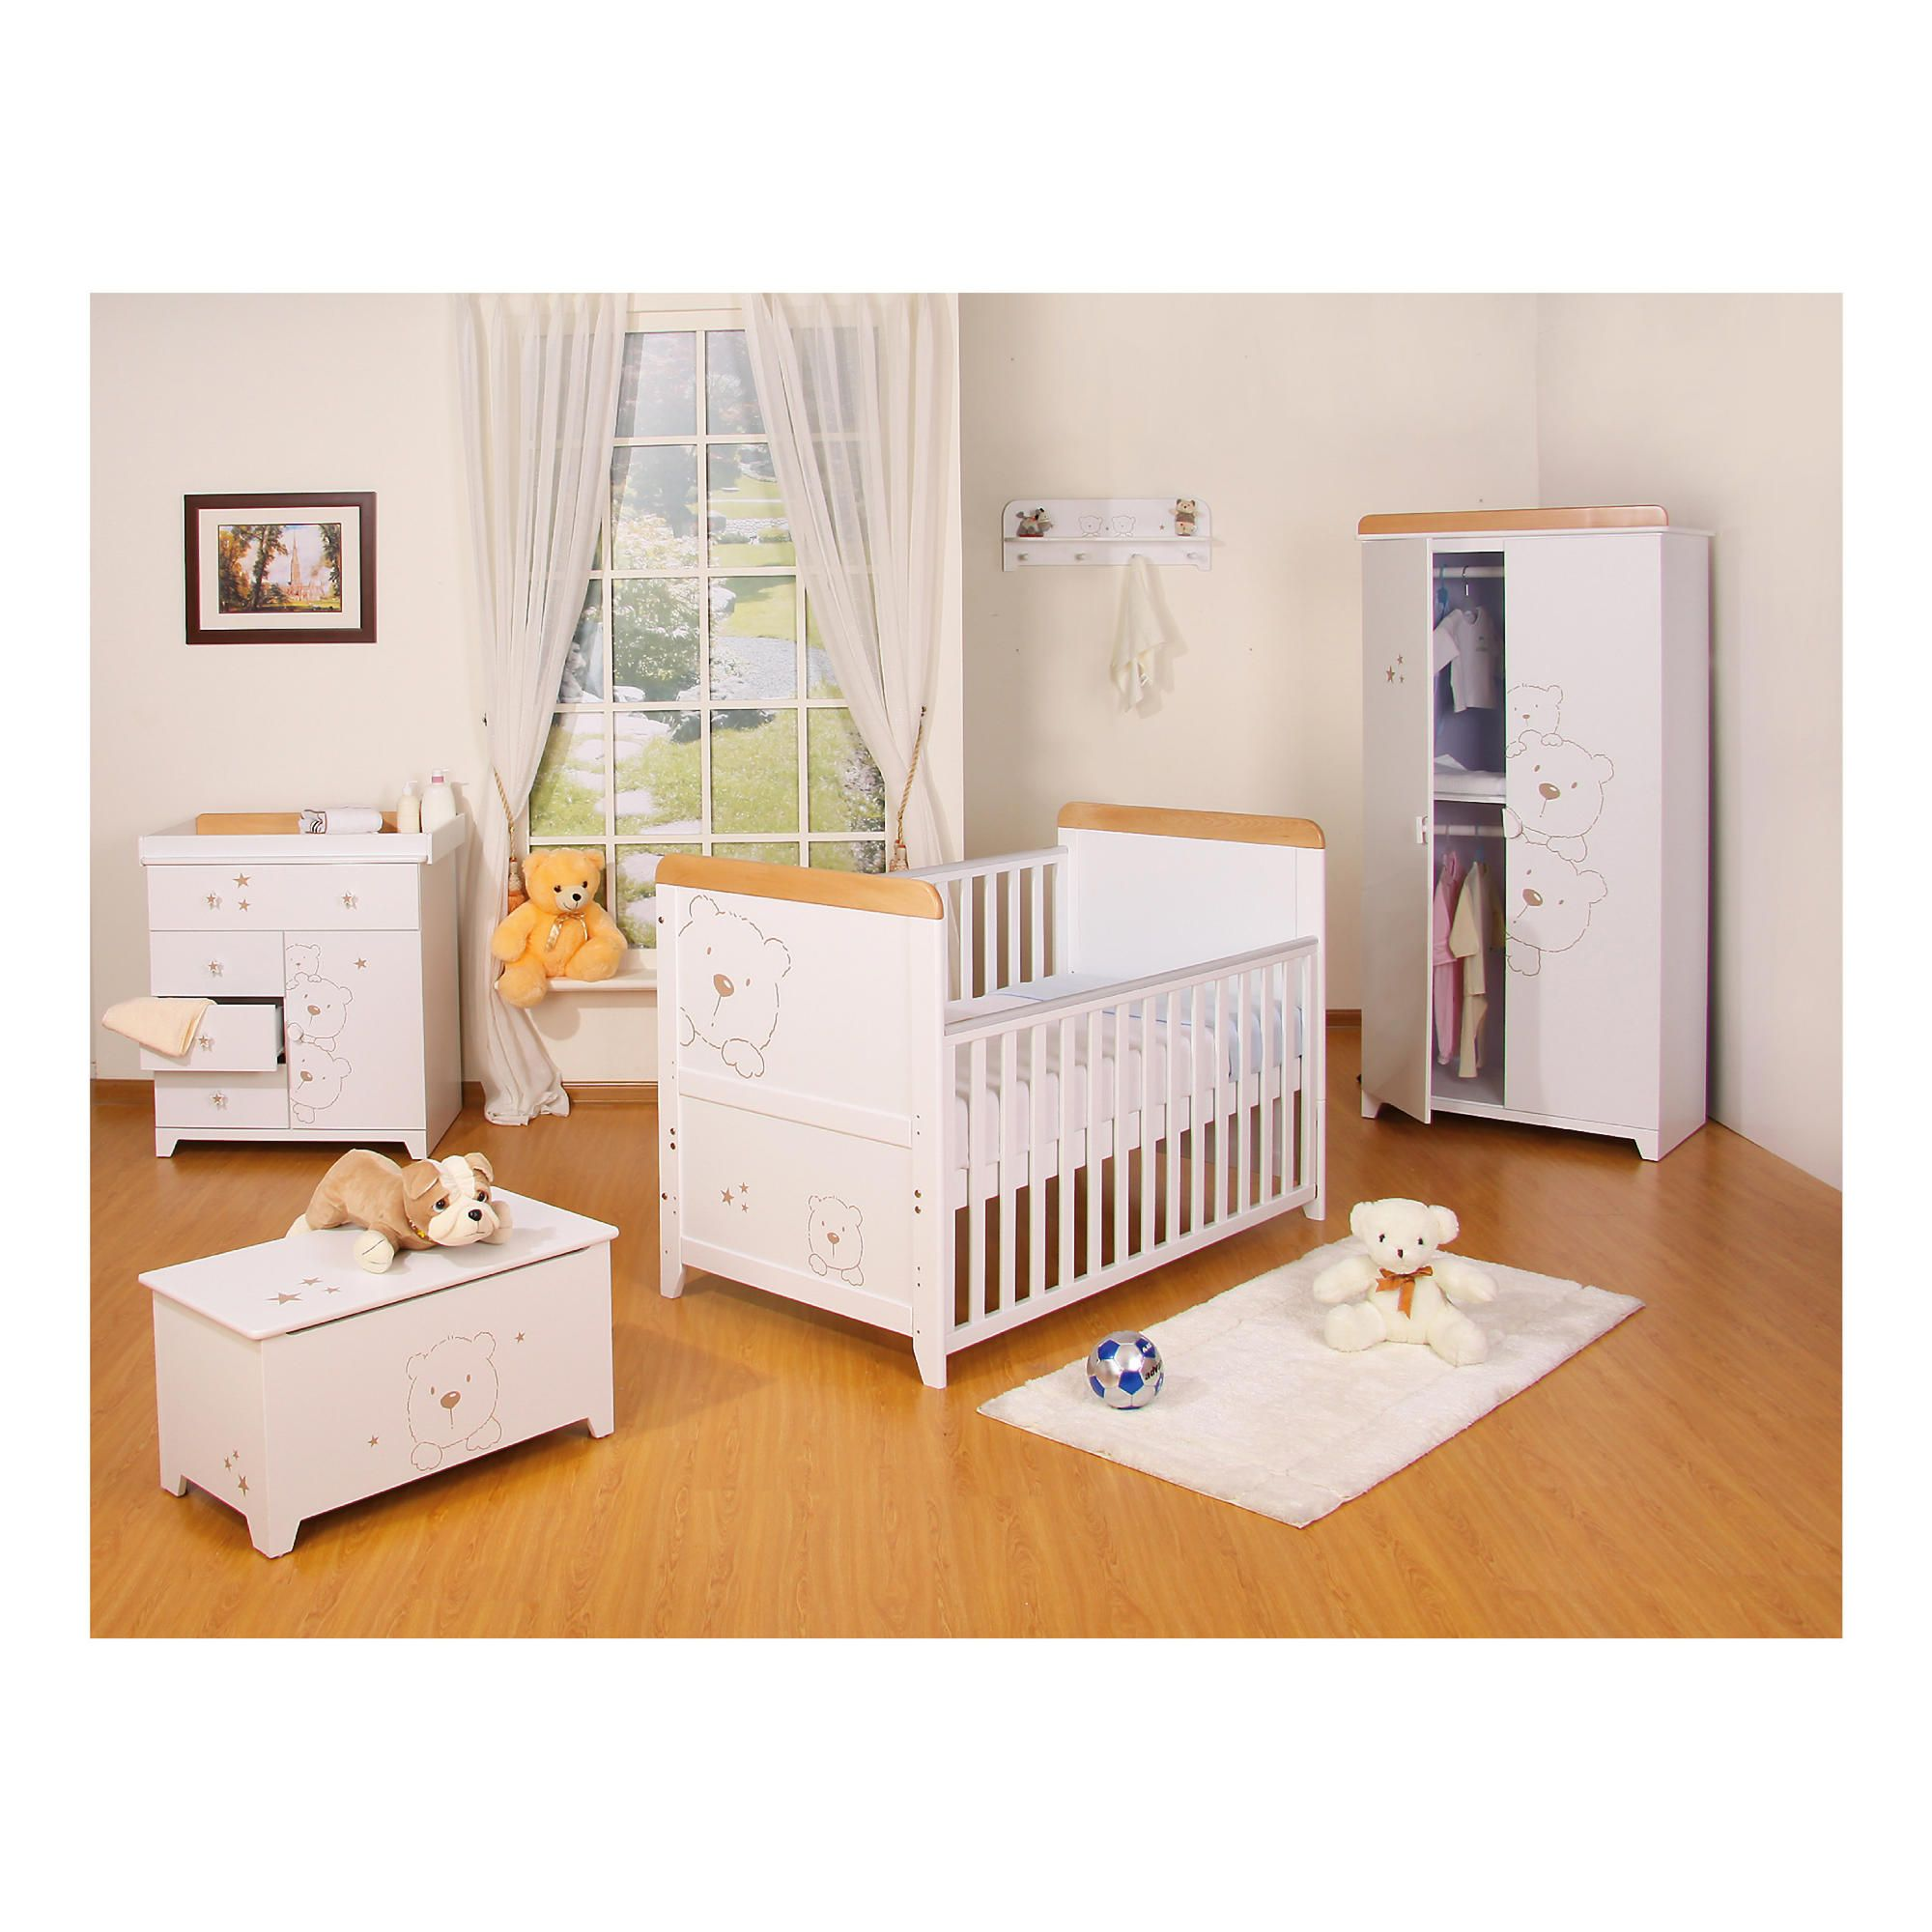 Tutti Bambini Bears 5 Piece Room Set, White With Free Home Assembly at Tescos Direct